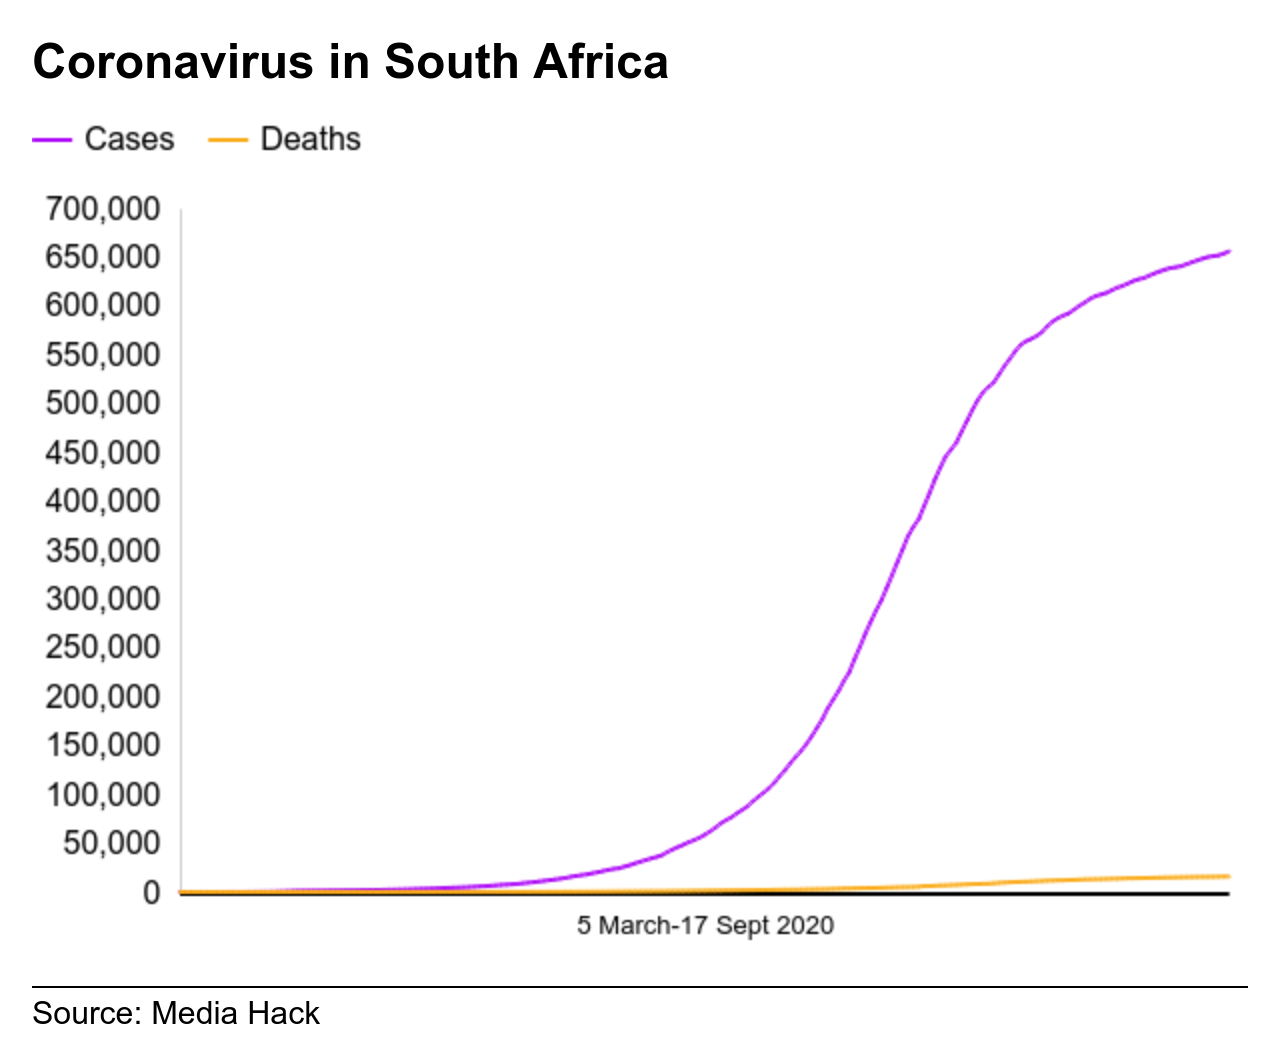 A chart showing coronavirus cases and deaths in South Africa from 5 March until 17 September 2020